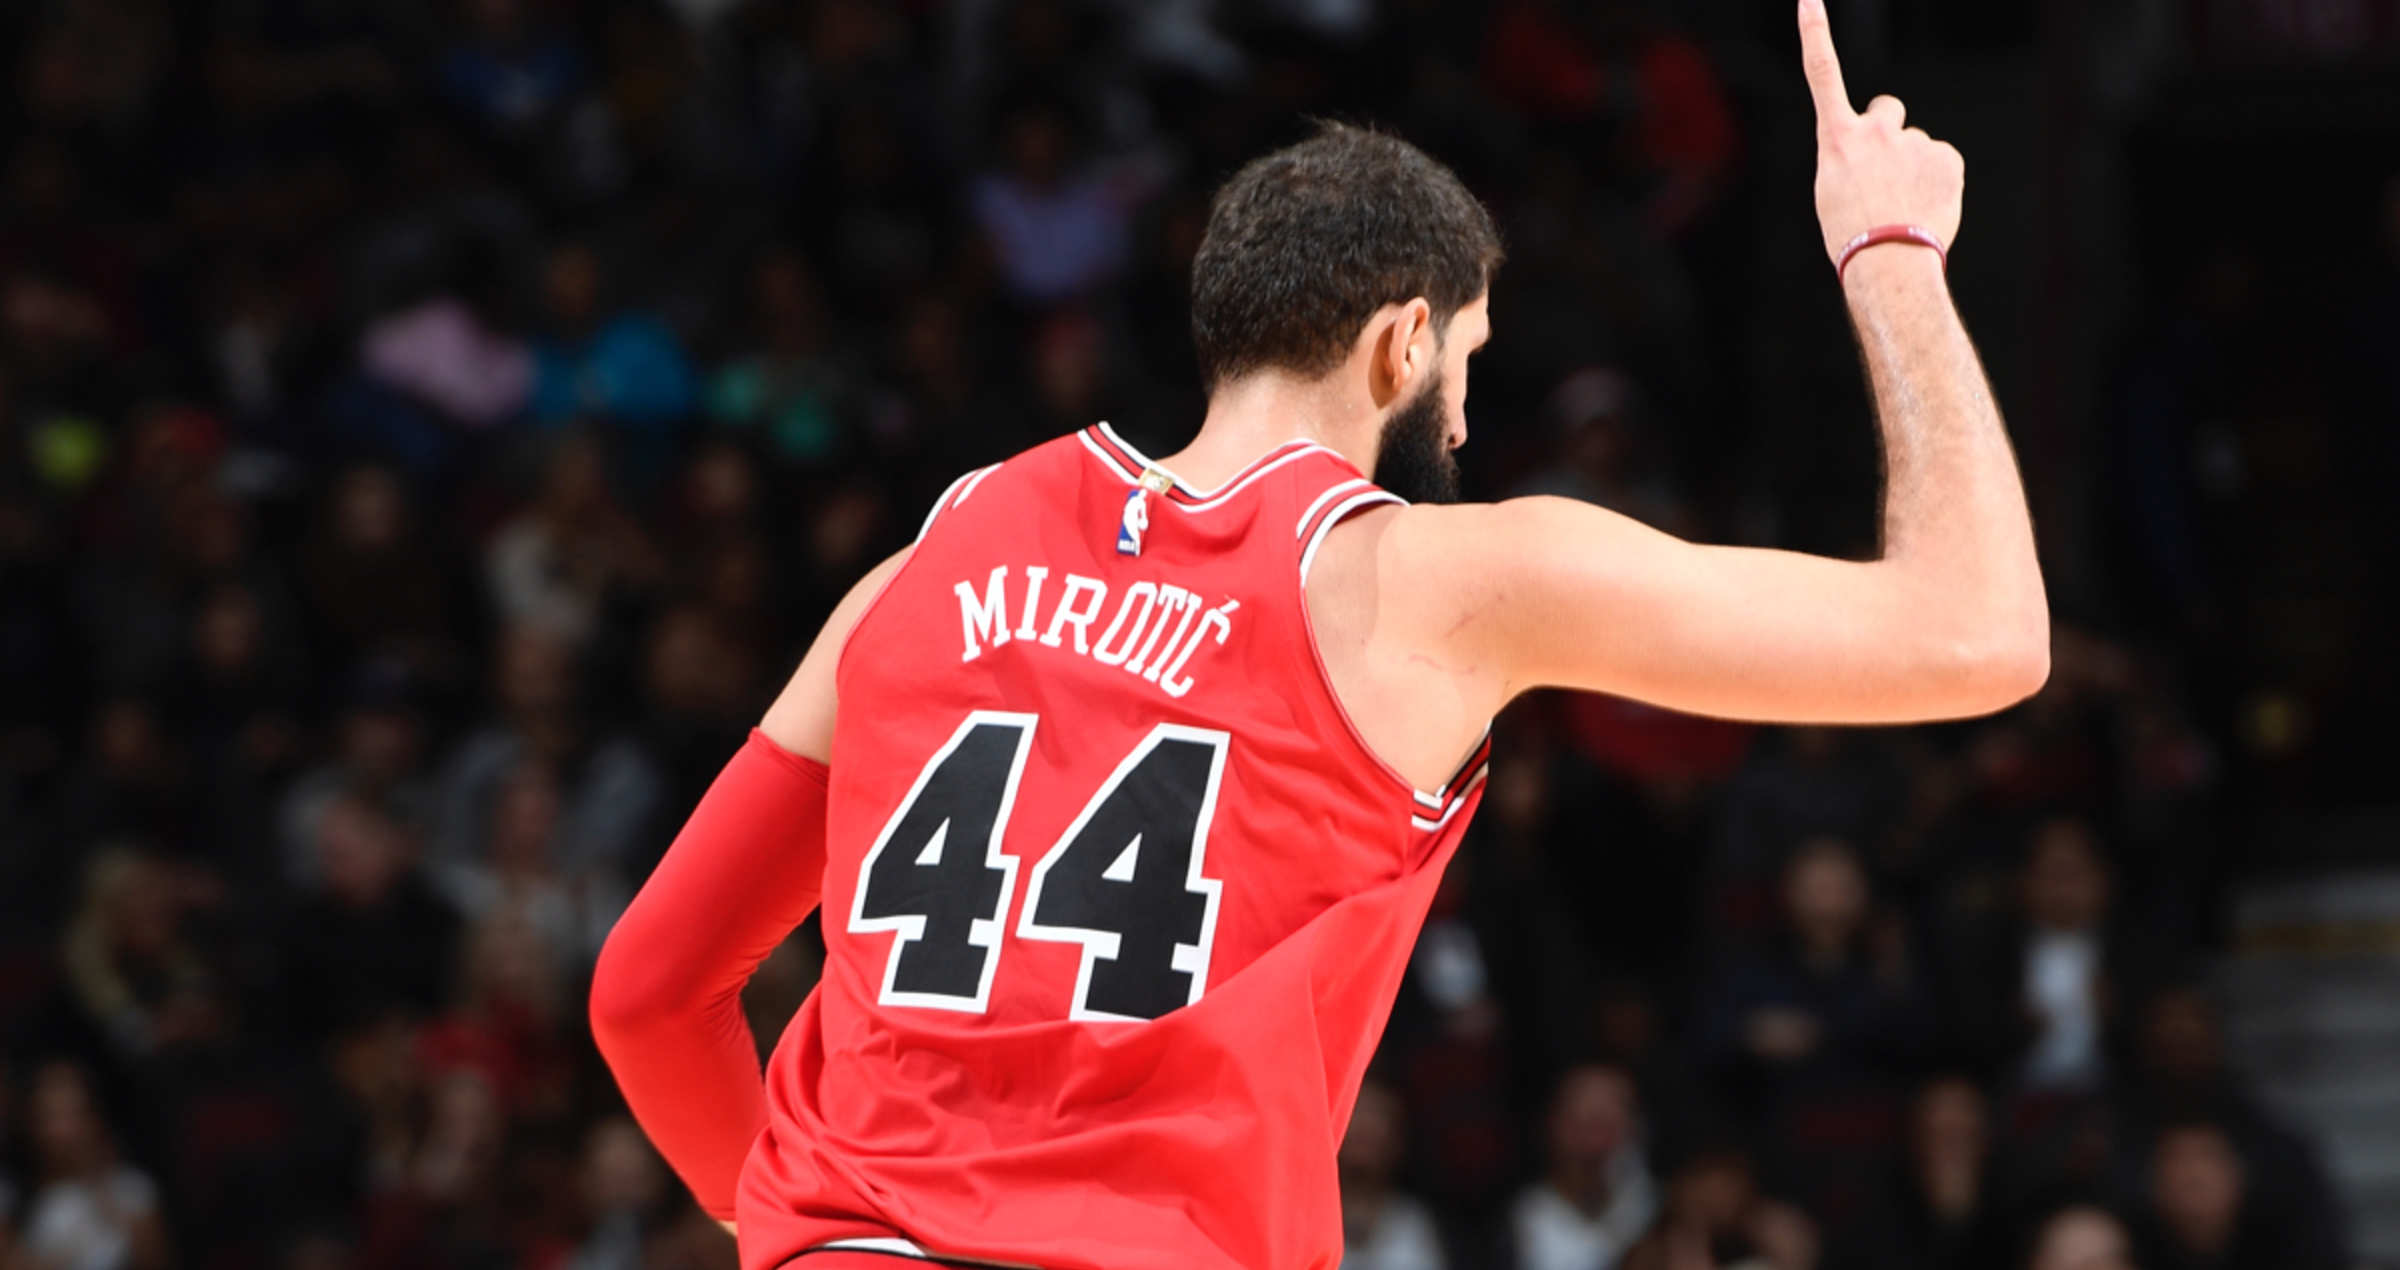 Nikola Mirotic celebrated after hitting a three pointer against the Utah Jazz